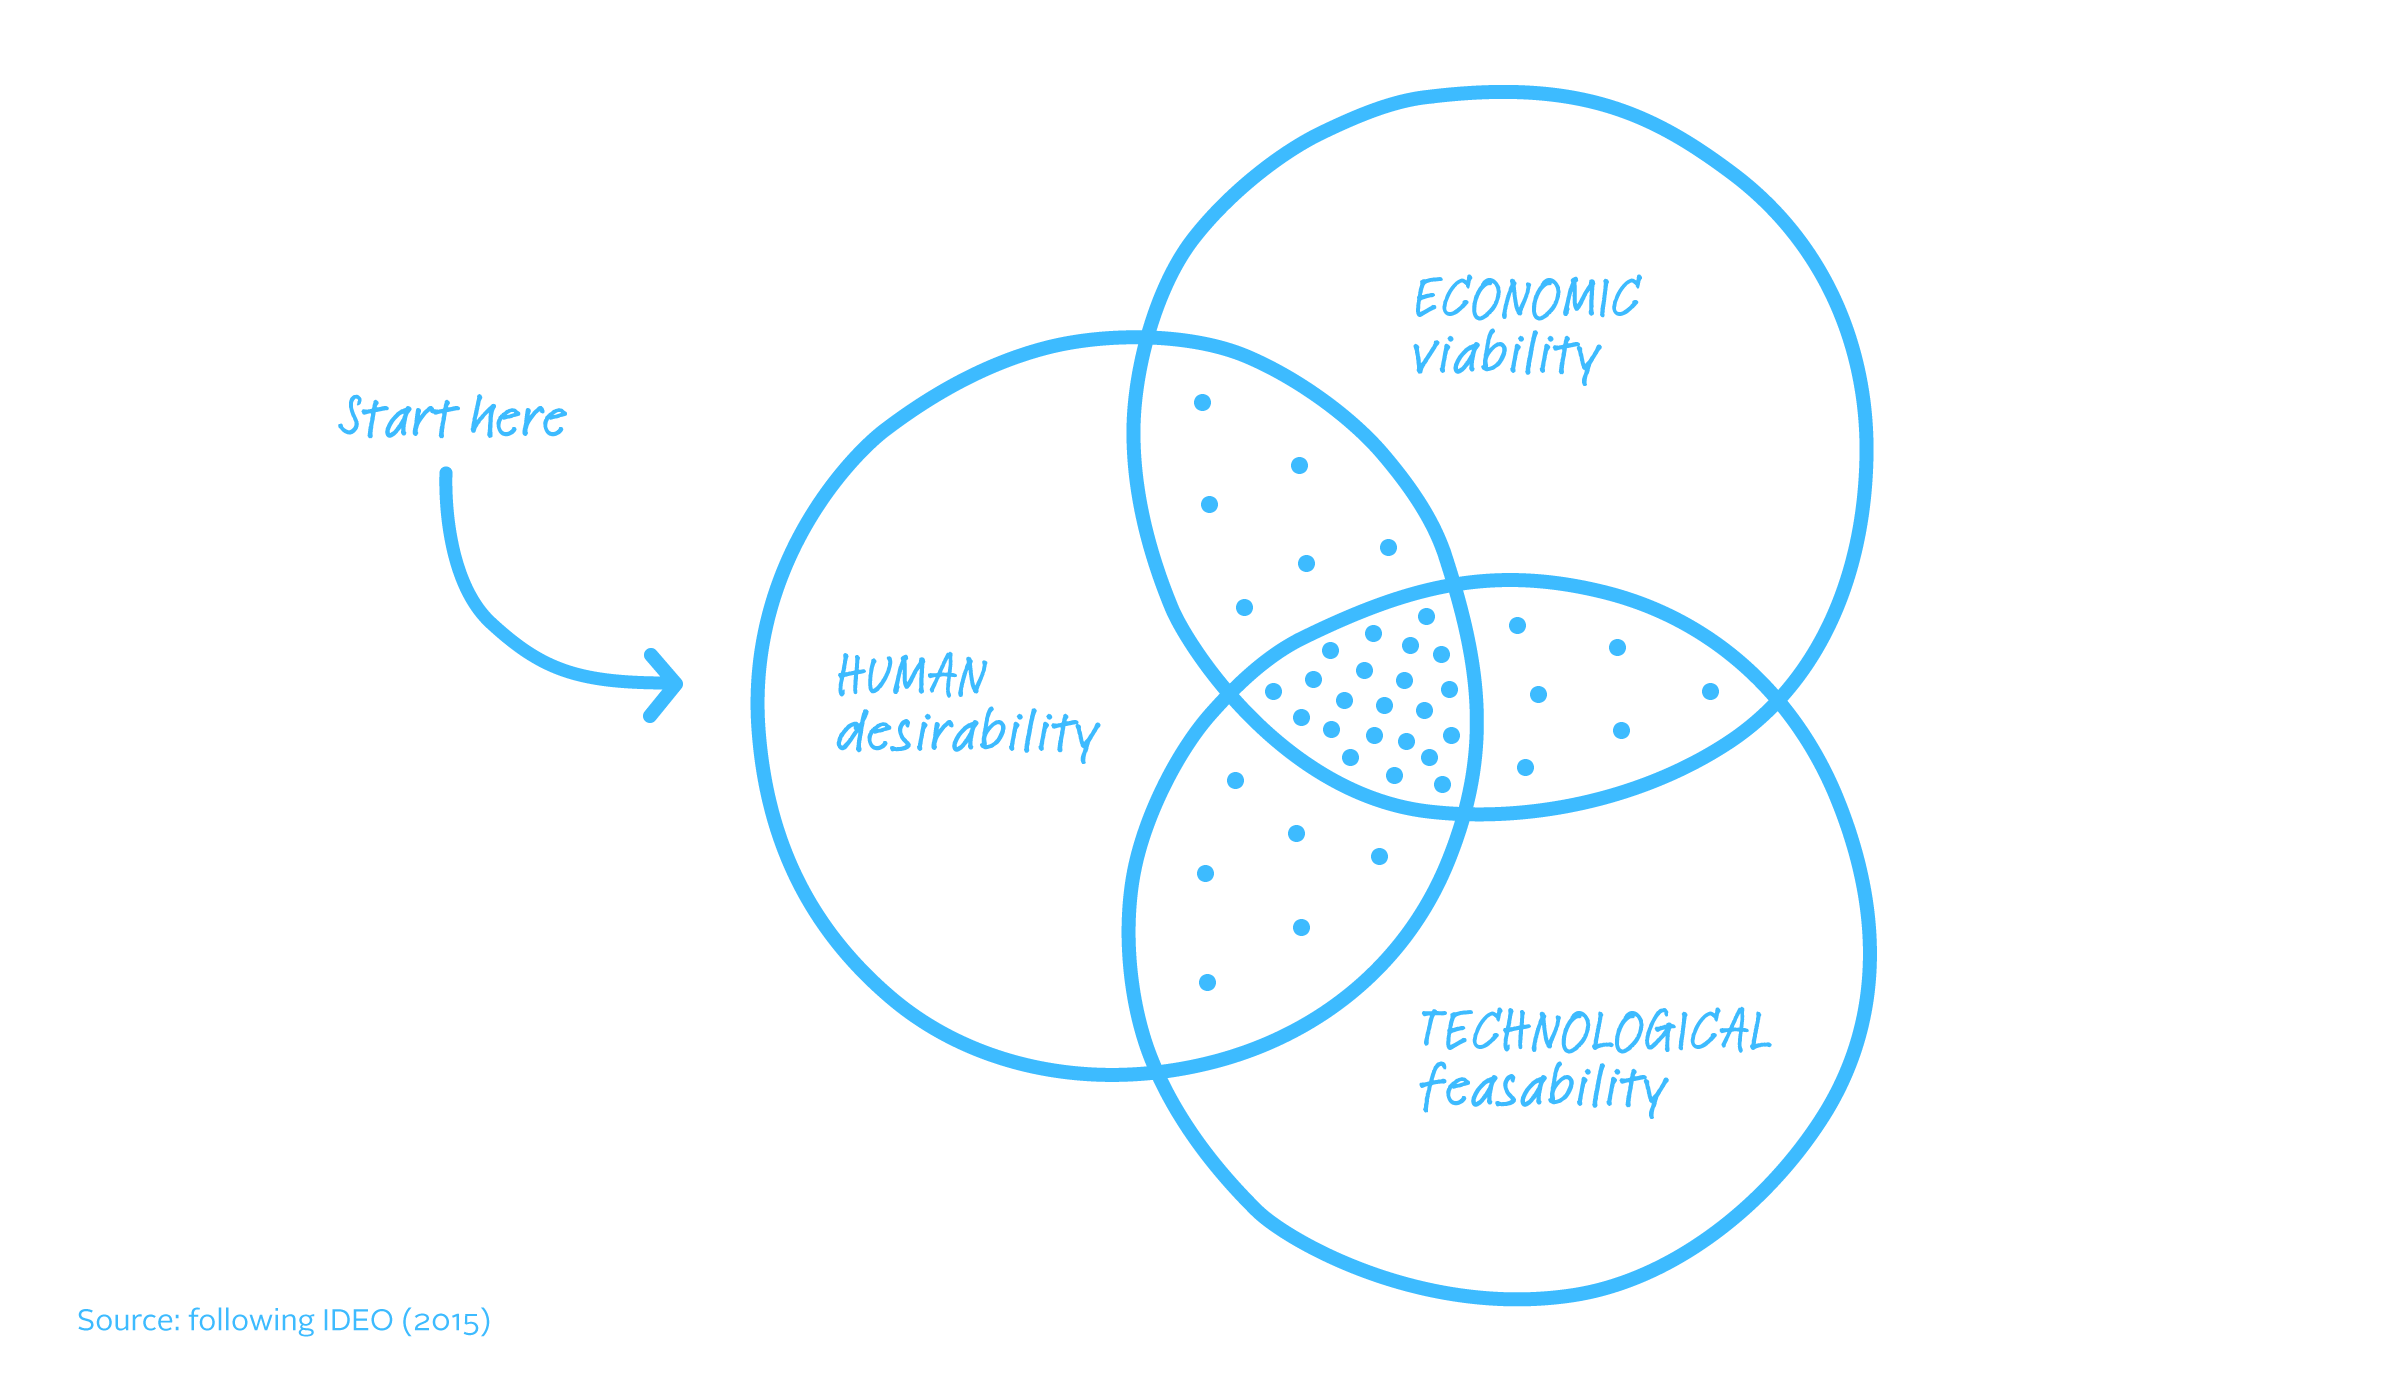 Source: IDEO (2015): The Field Guide to Human-Centered Design, p14